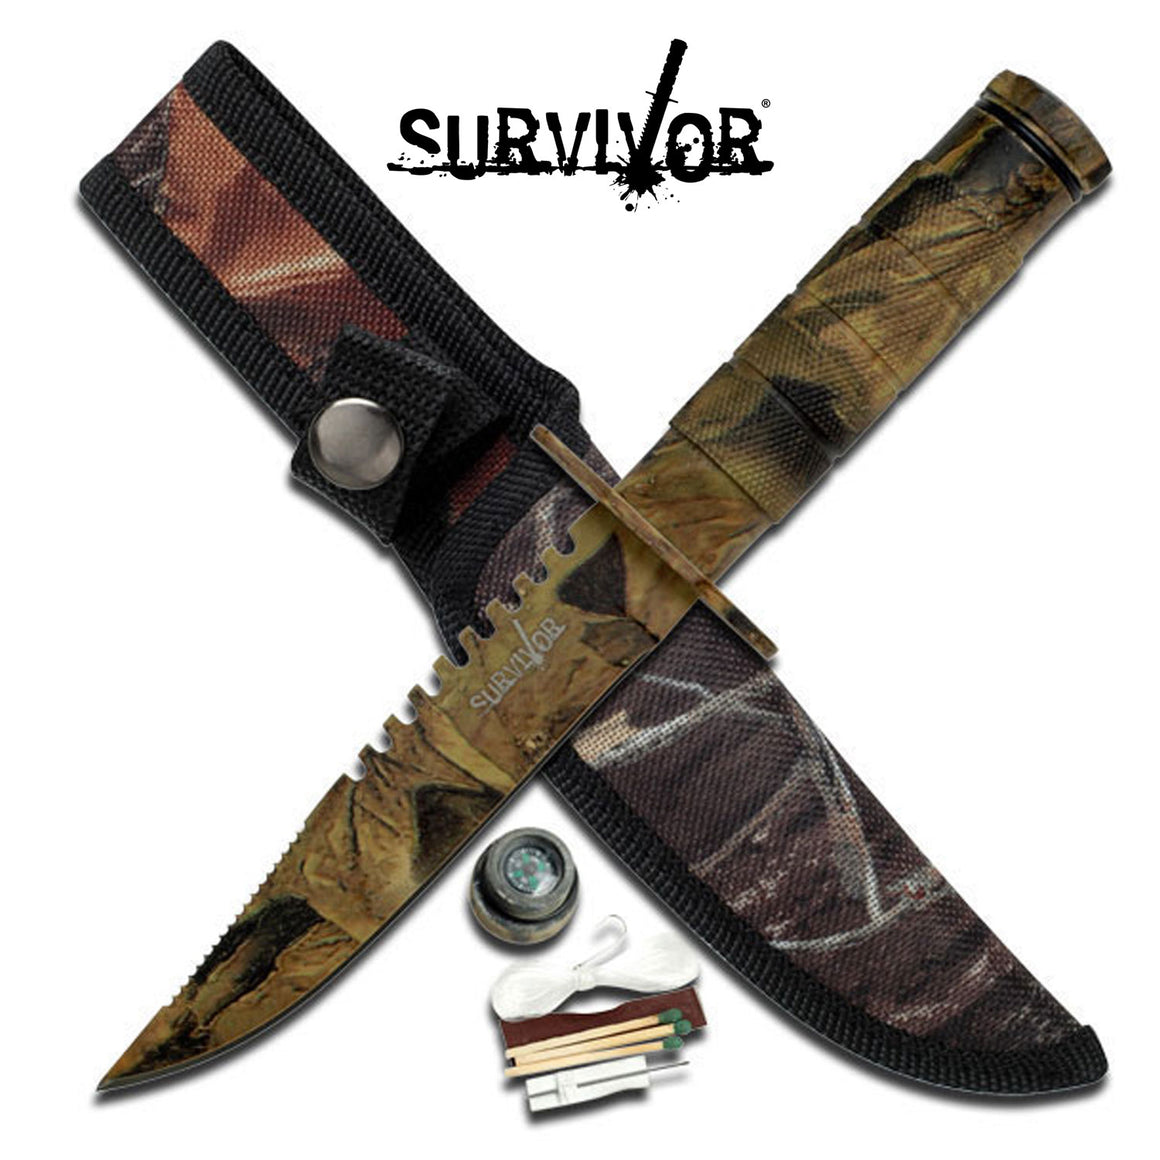 Survivor HK-690CA Fixed Blade Knife